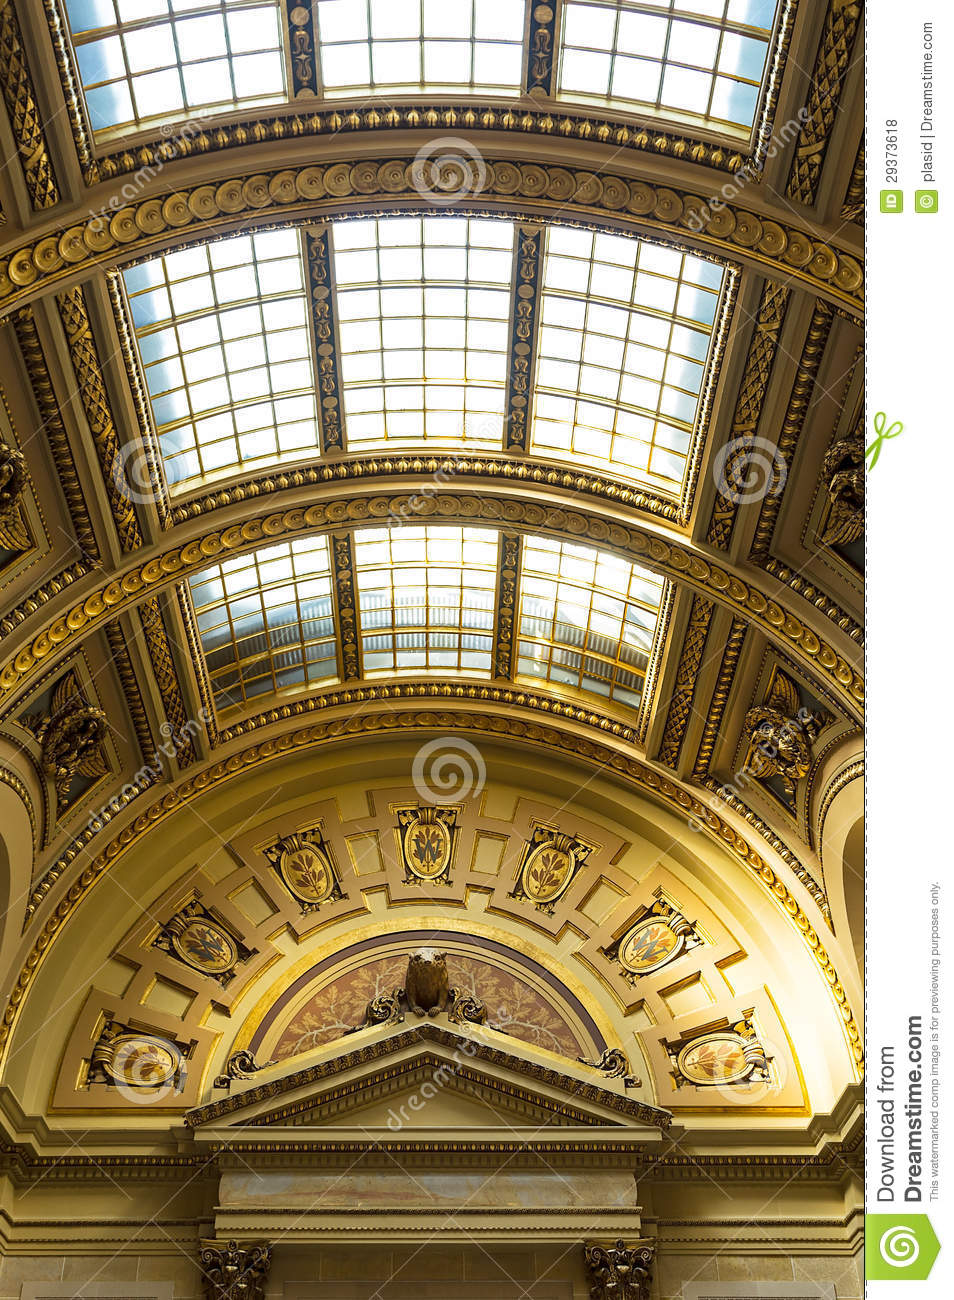 The Interior View Of Wisconsin State Capitol In Madison Royalty Free Stock Photos Image 29373618